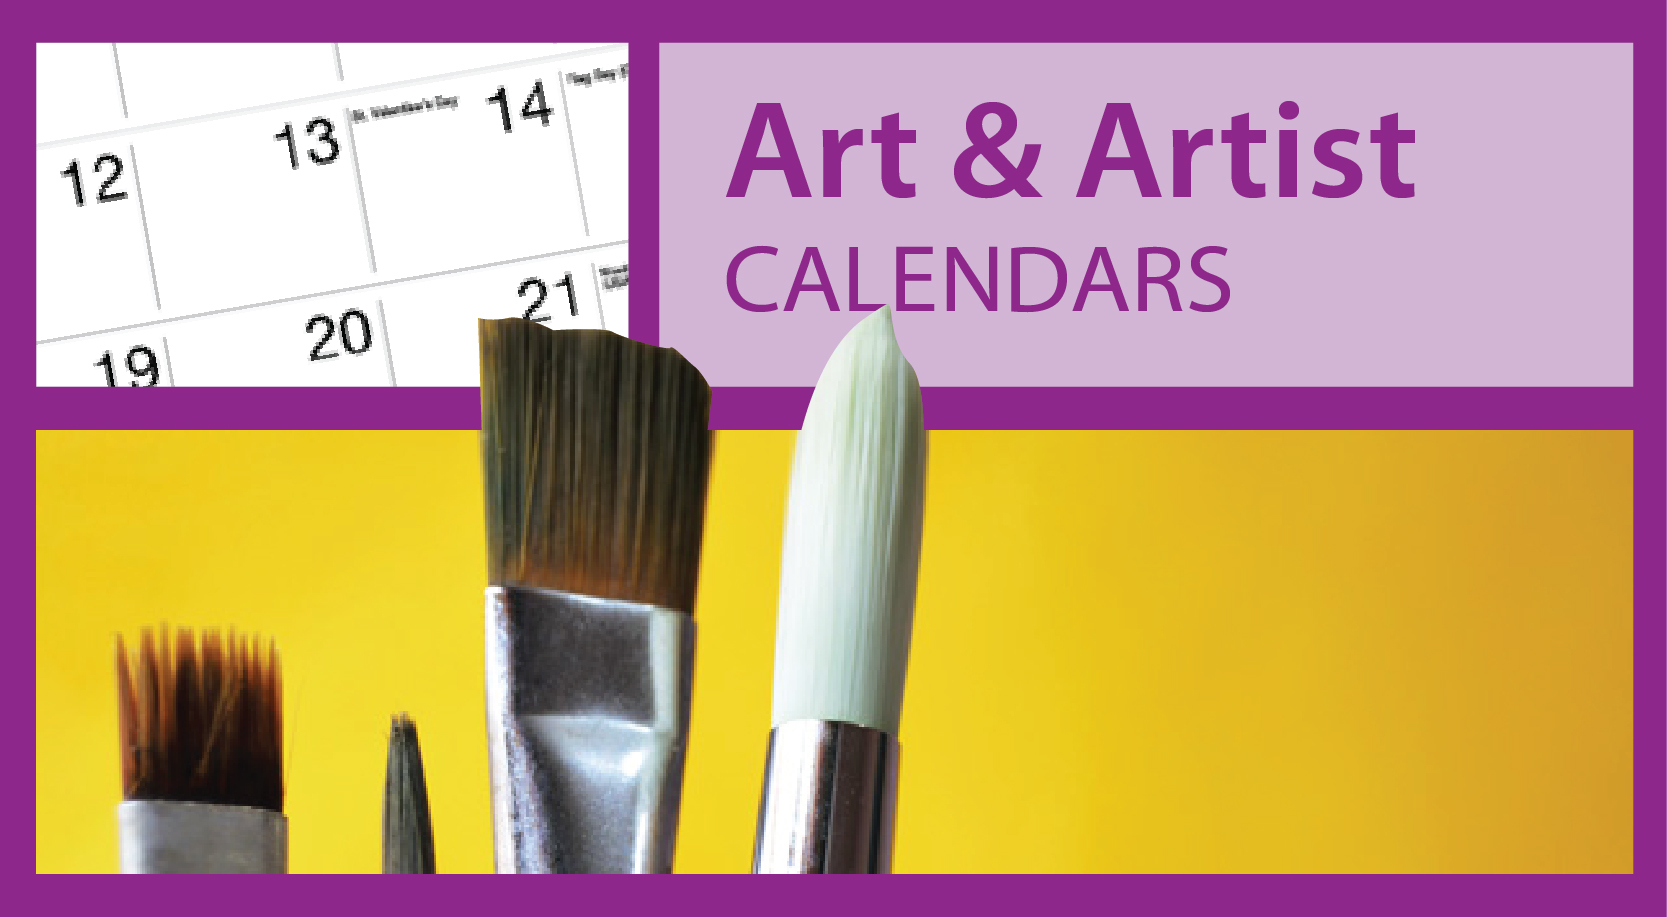 Promotional Art & Artist Calendars https://www.valuecalendars.com/products/standard_imprinted_calendars/promotional_art_calendars